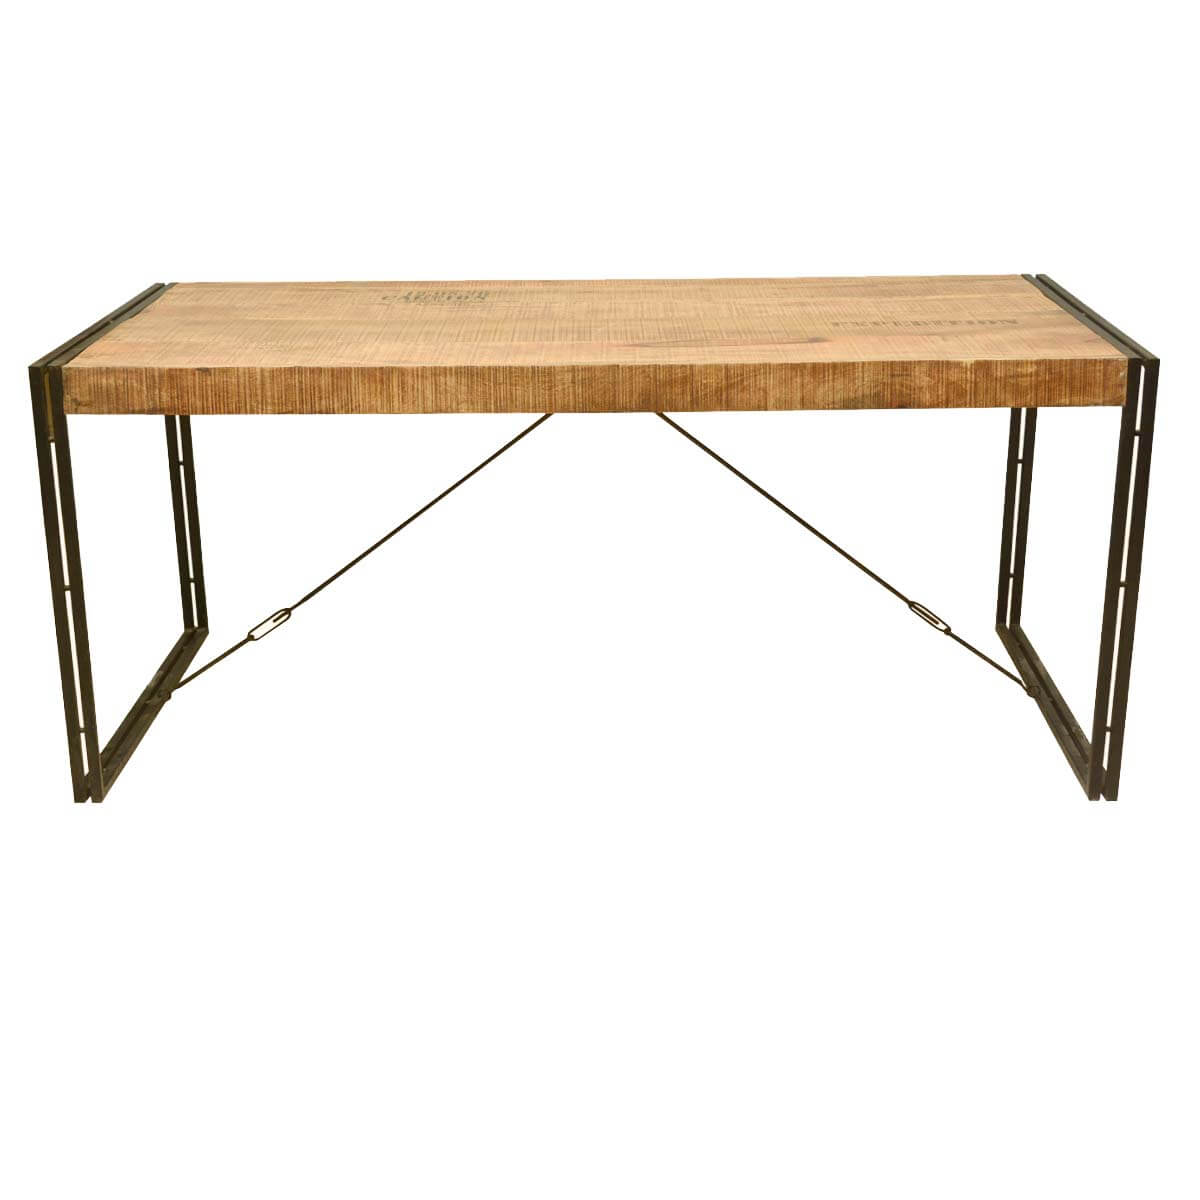 Large Rustic Industrial Style Mango Wood and Iron Dining Table : 58031 from www.sierralivingconcepts.com size 1200 x 1200 jpeg 81kB